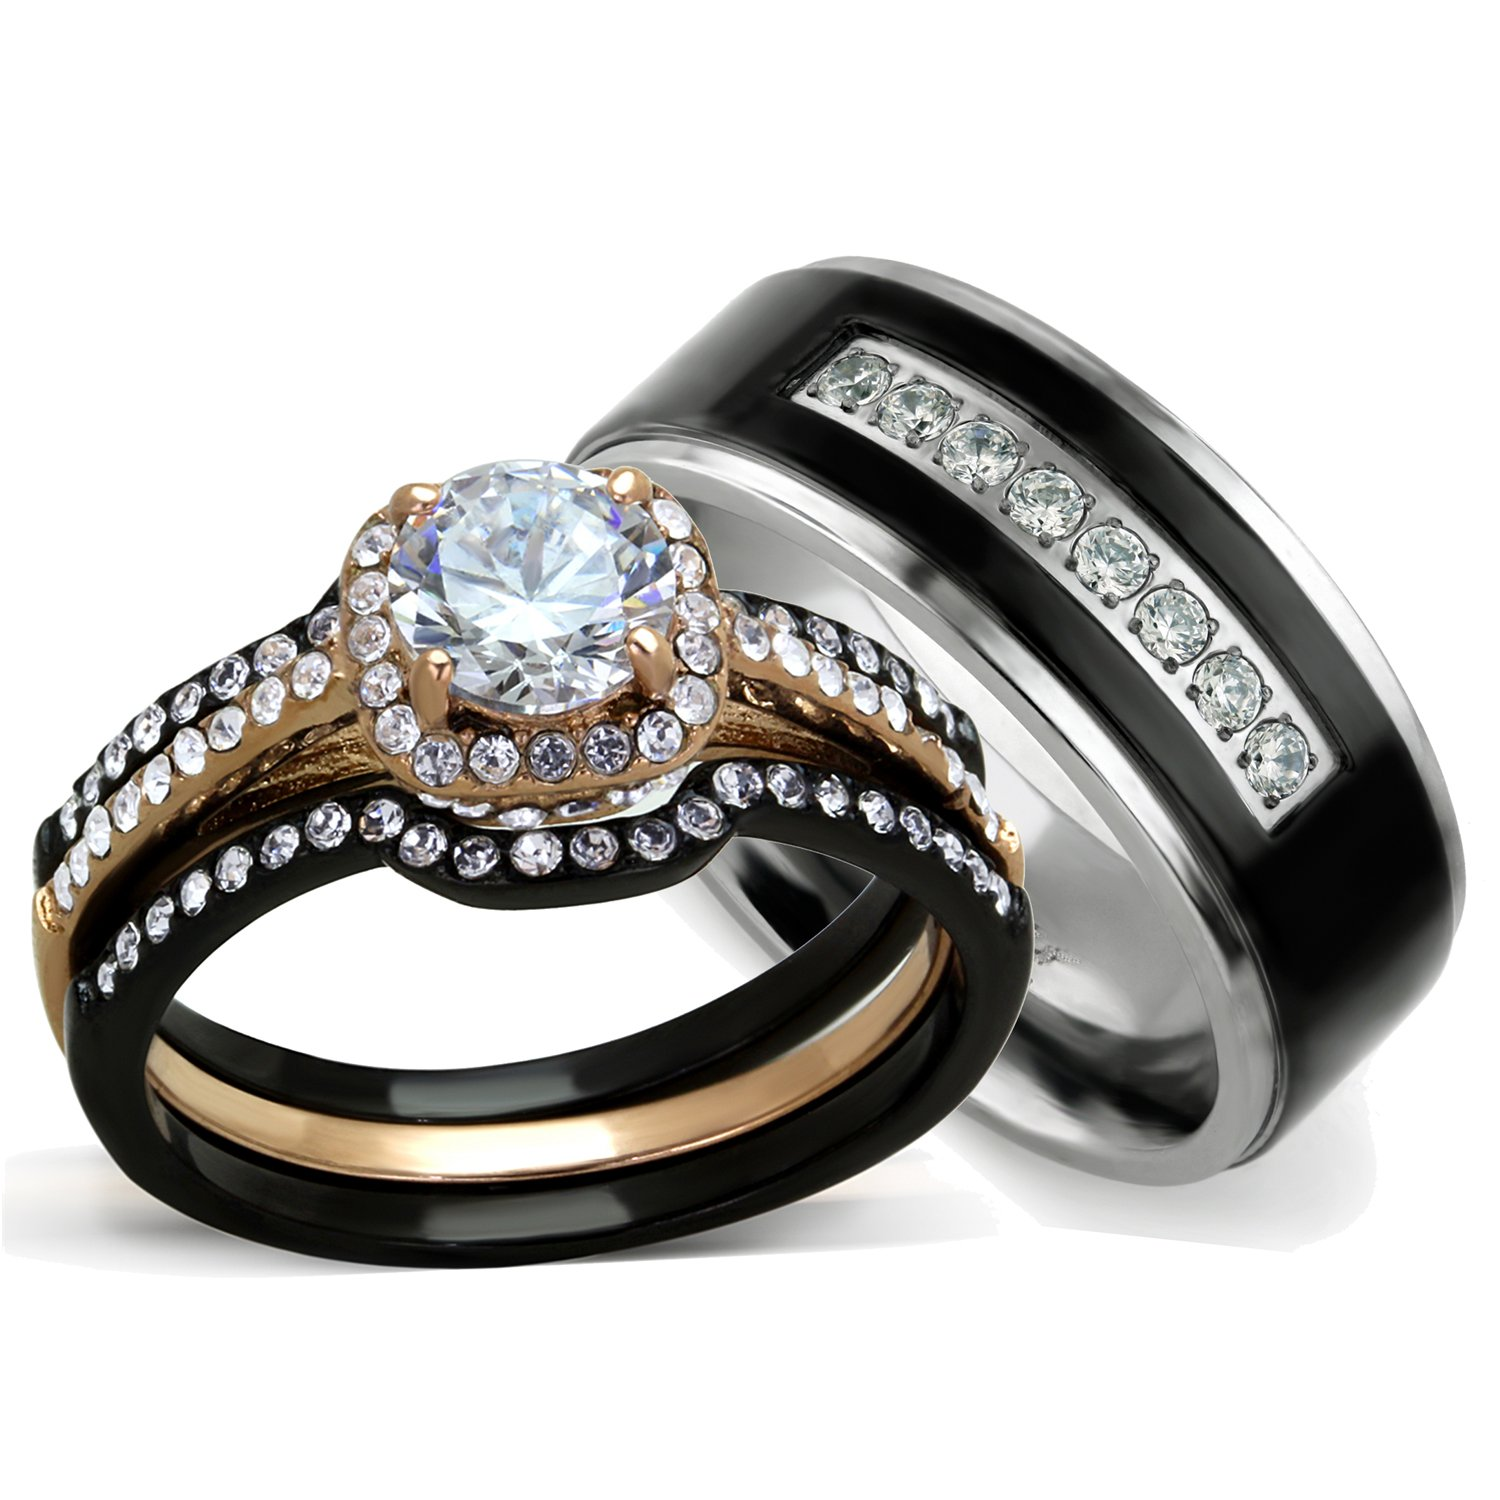 Ordinaire Amazon.com: His And Hers Wedding Ring Sets   Womenu0027s Halo Design CZ Wedding  Rings Sets U0026 Menu0027s Titanium Matching Wedding Bands (Womenu0027s Size 05 U0026 Menu0027s  Size ...